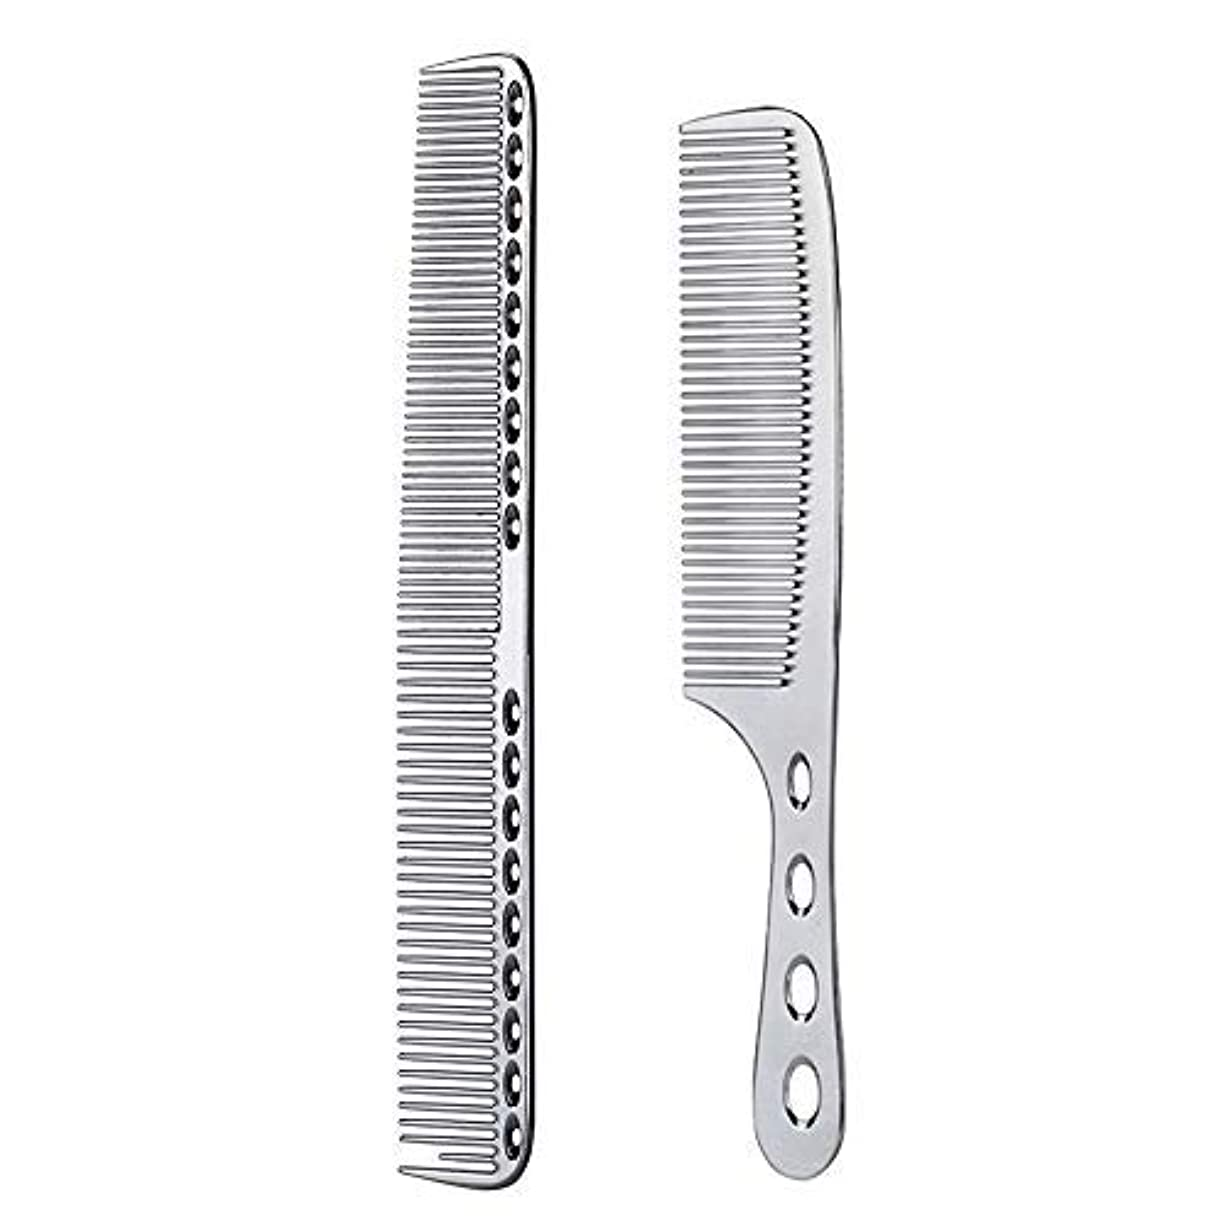 経営者派生する聖域2 pcs Stainless Steel Hair Combs Anti Static Styling Comb Hairdressing Barbers Combs (Silver) [並行輸入品]